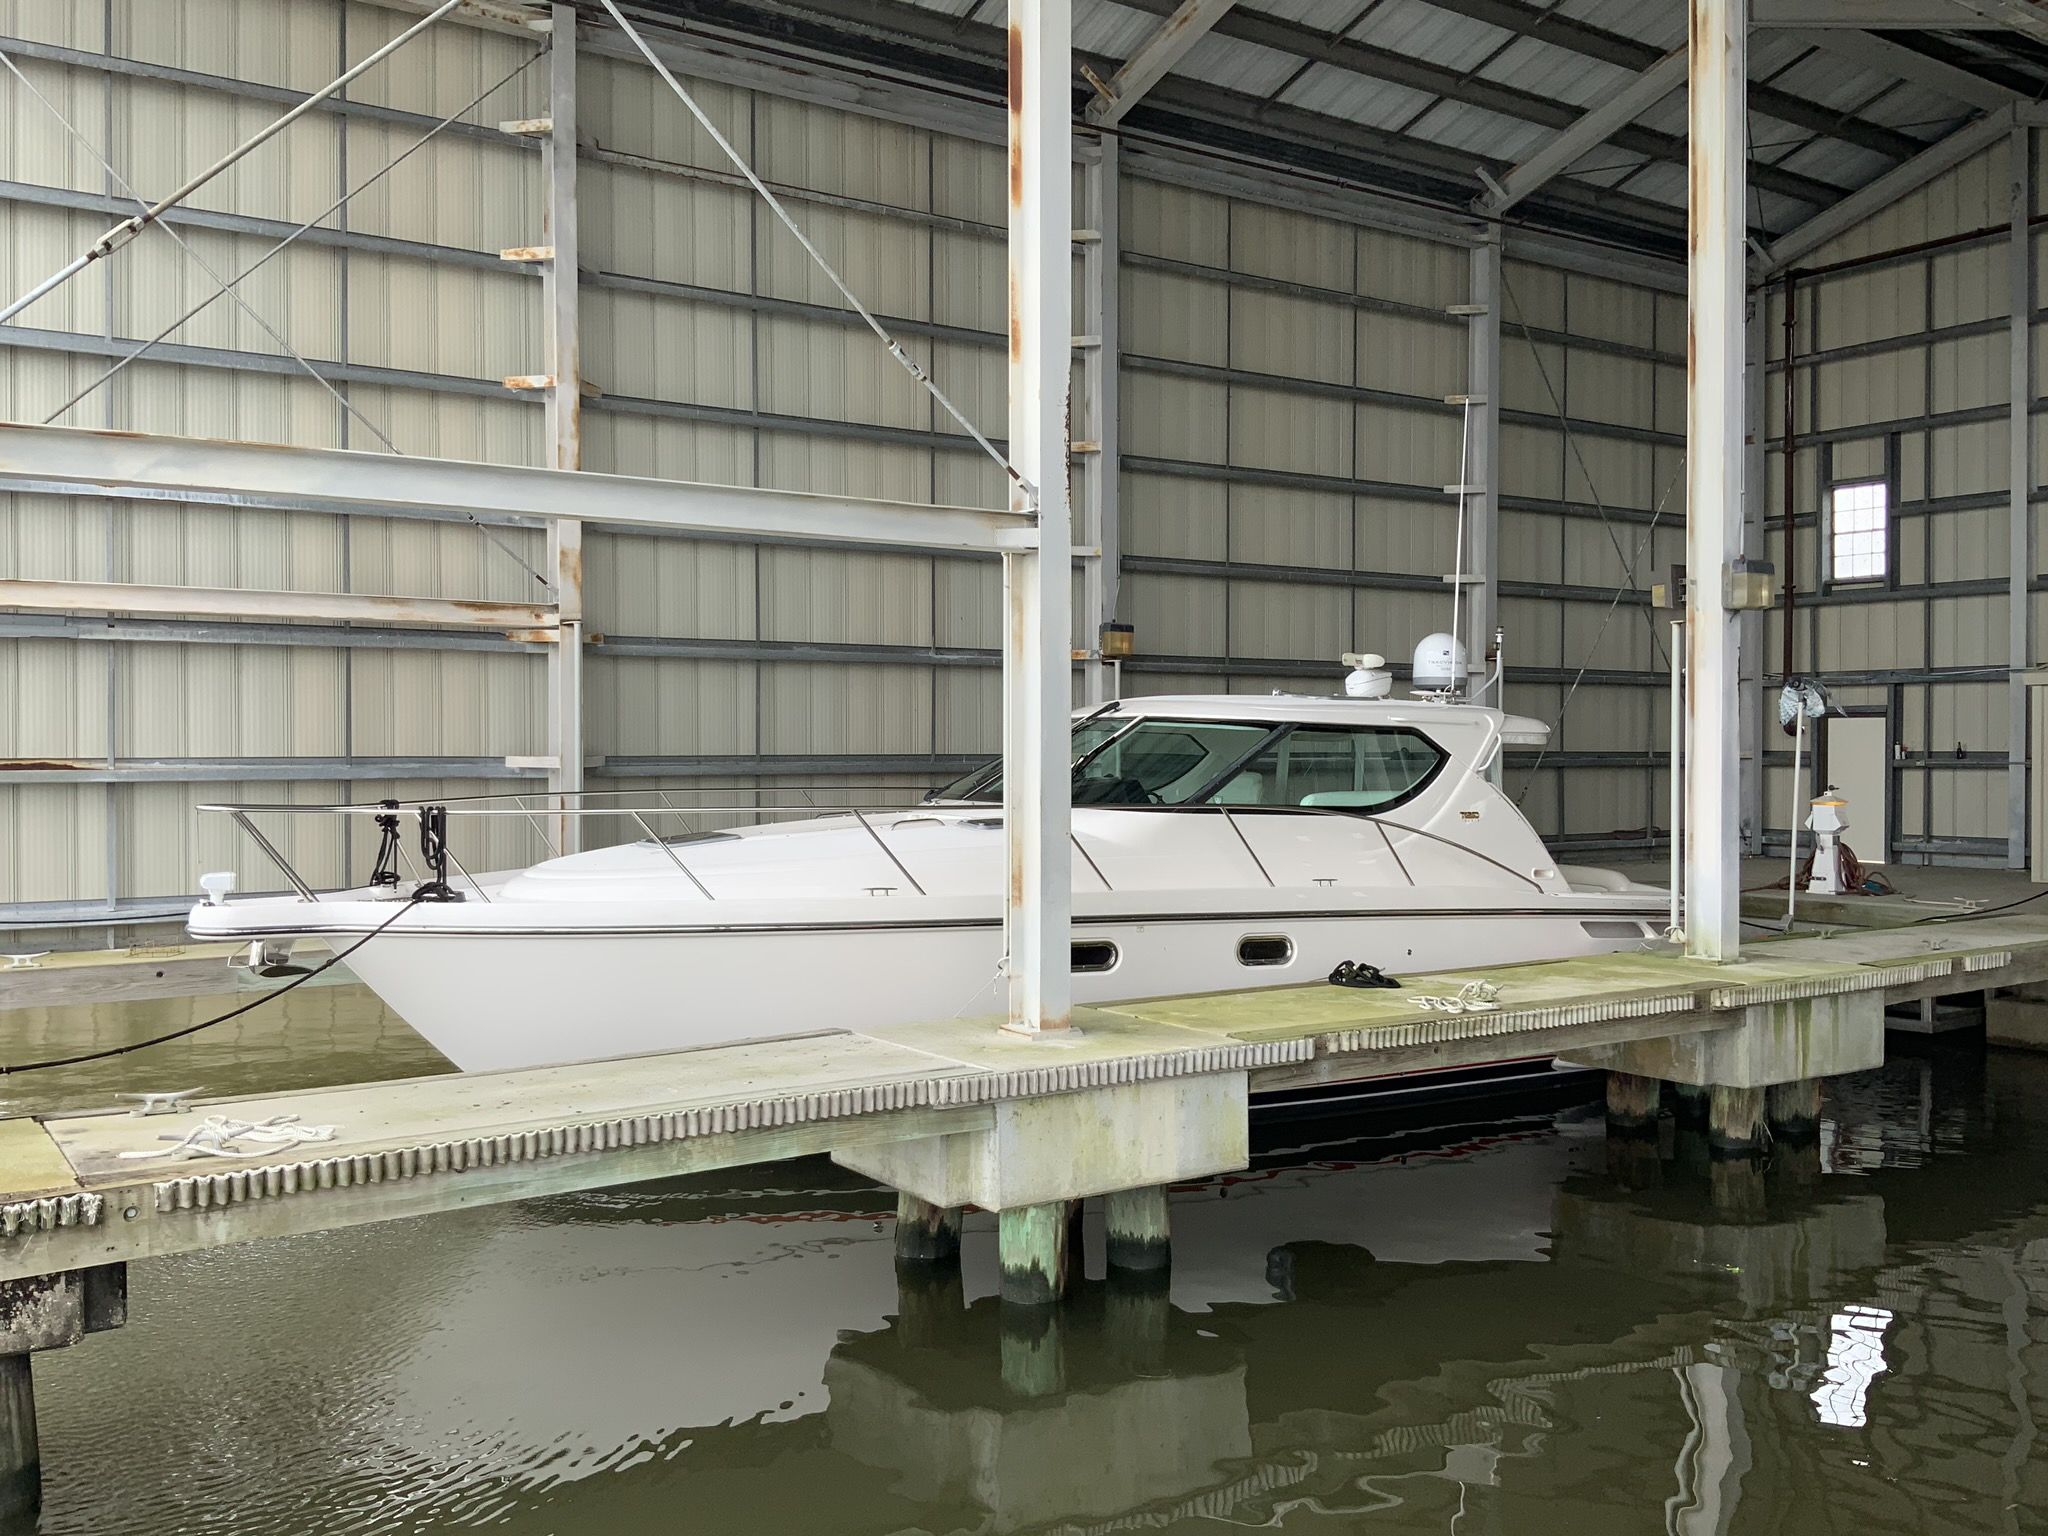 Tiara 4300 Sovran Boats For Sale In United States